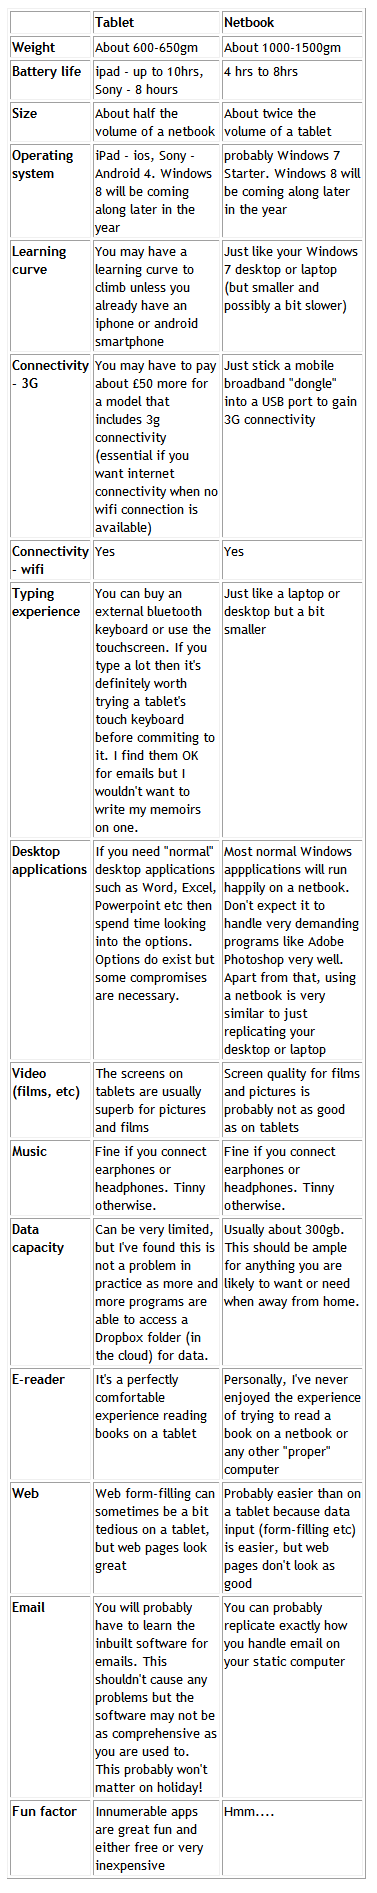 Table of comparisons between tablets and netbooks